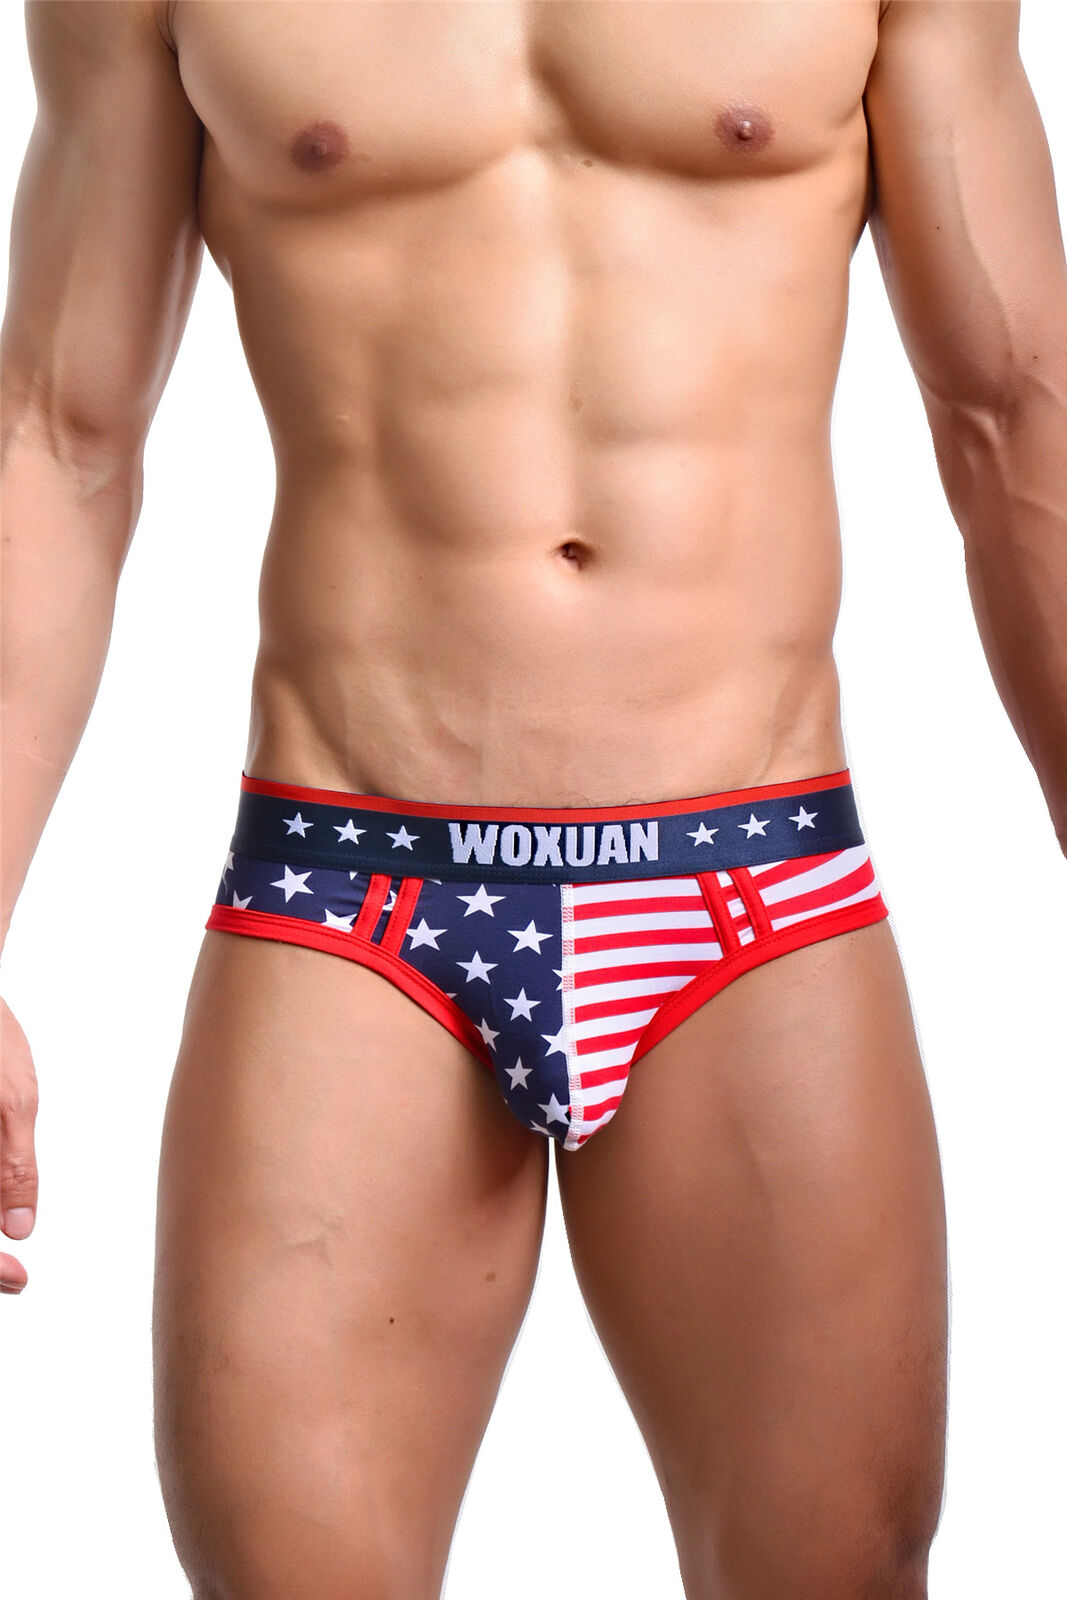 4c0641ac1b34 Mens Vest Leotard Underwear American Flag Printed Sexy Boxer Briefs Shorts  Pants